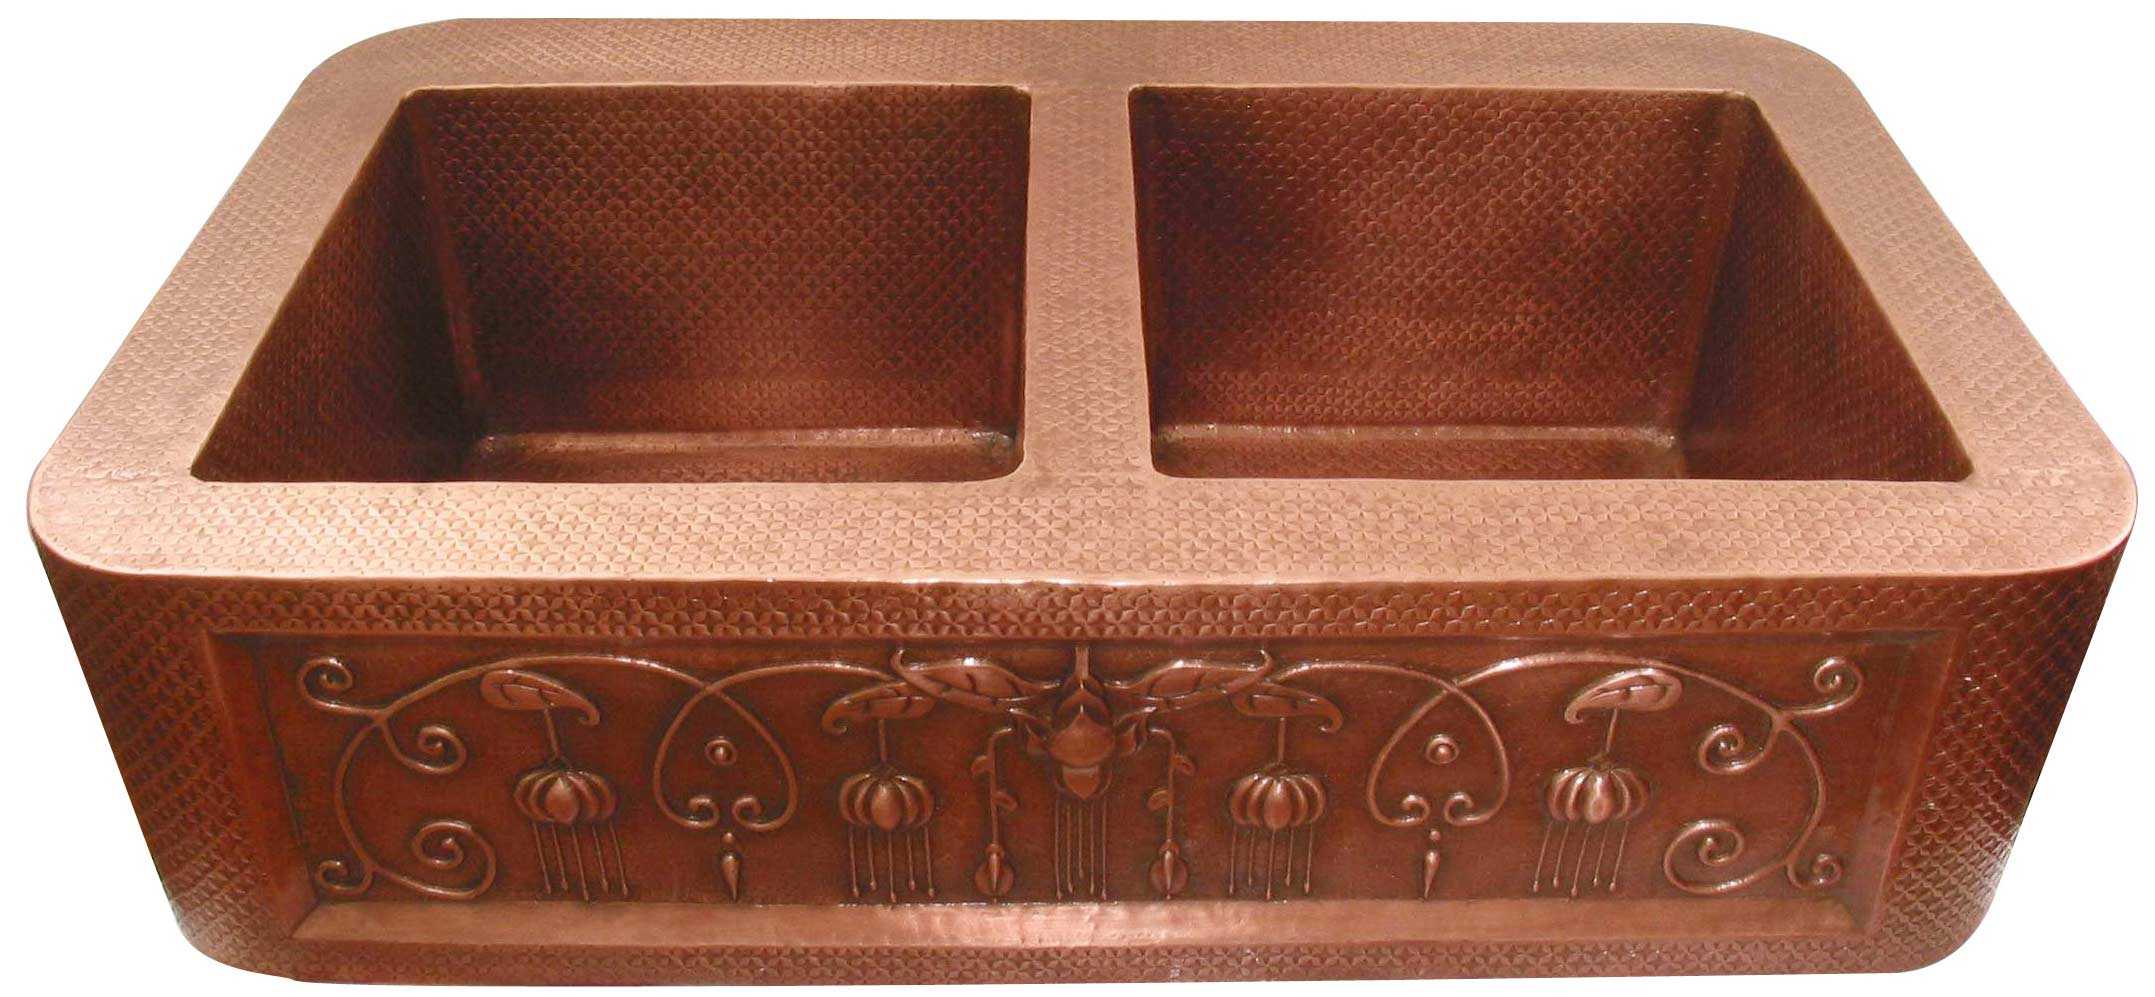 Remarkable Copper Apron Sinks Kitchen 2155 x 997 · 187 kB · jpeg